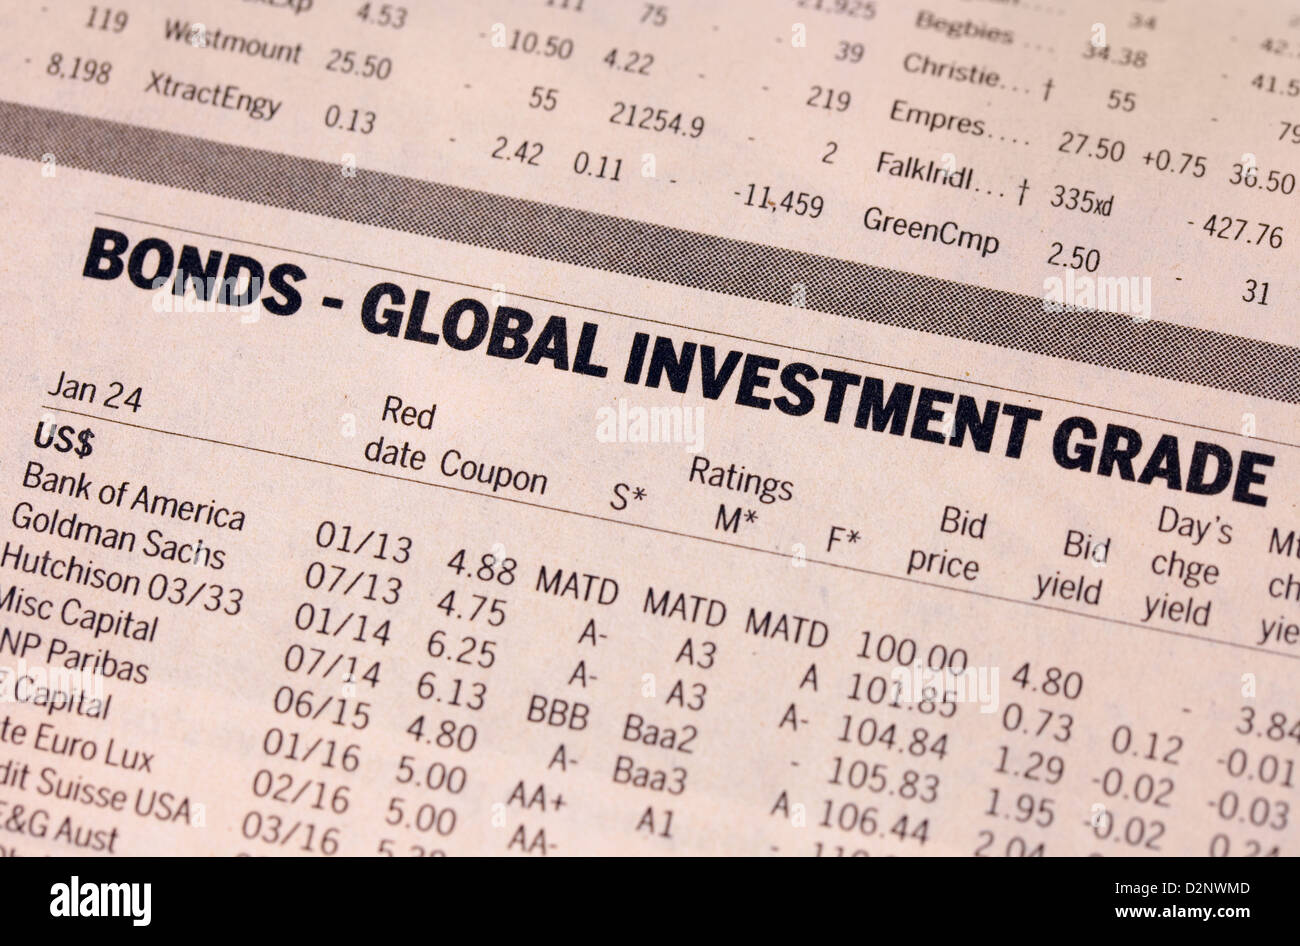 Bonds - Global investment trade - finance values in the Financial Times newspaper, UK - Stock Image